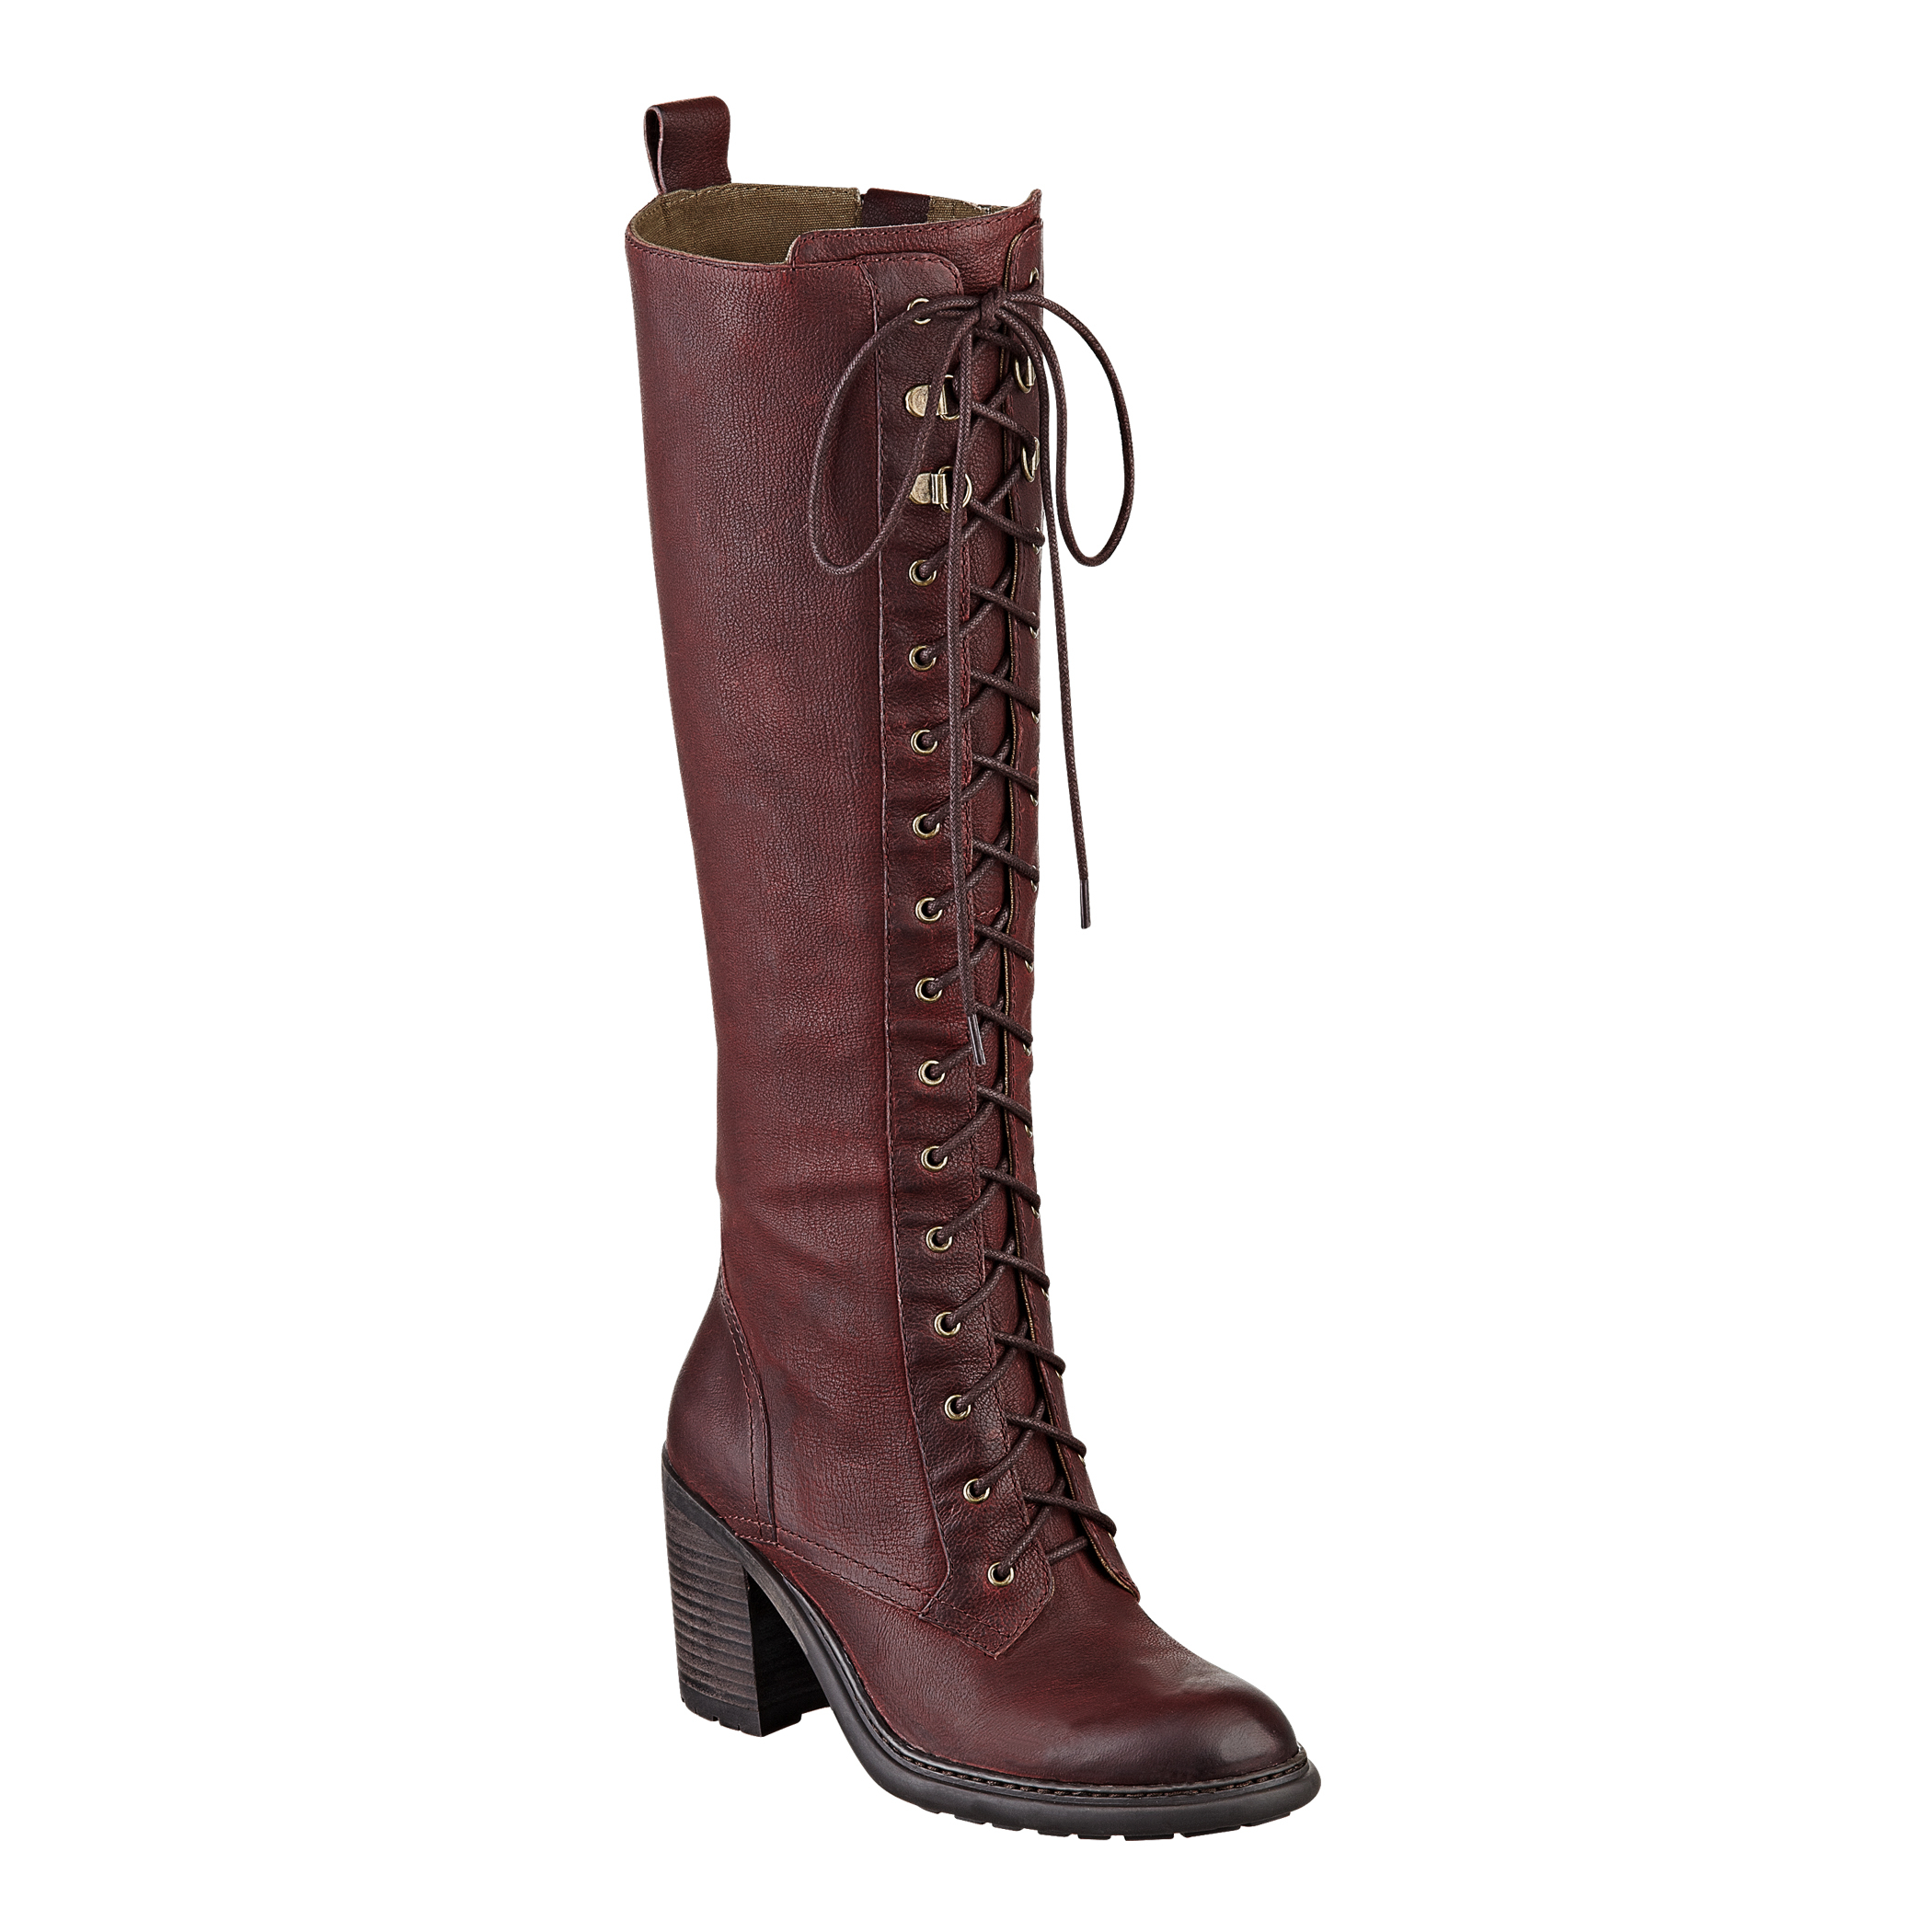 Nine West Lory Boot In Brown Wine Leather Lyst